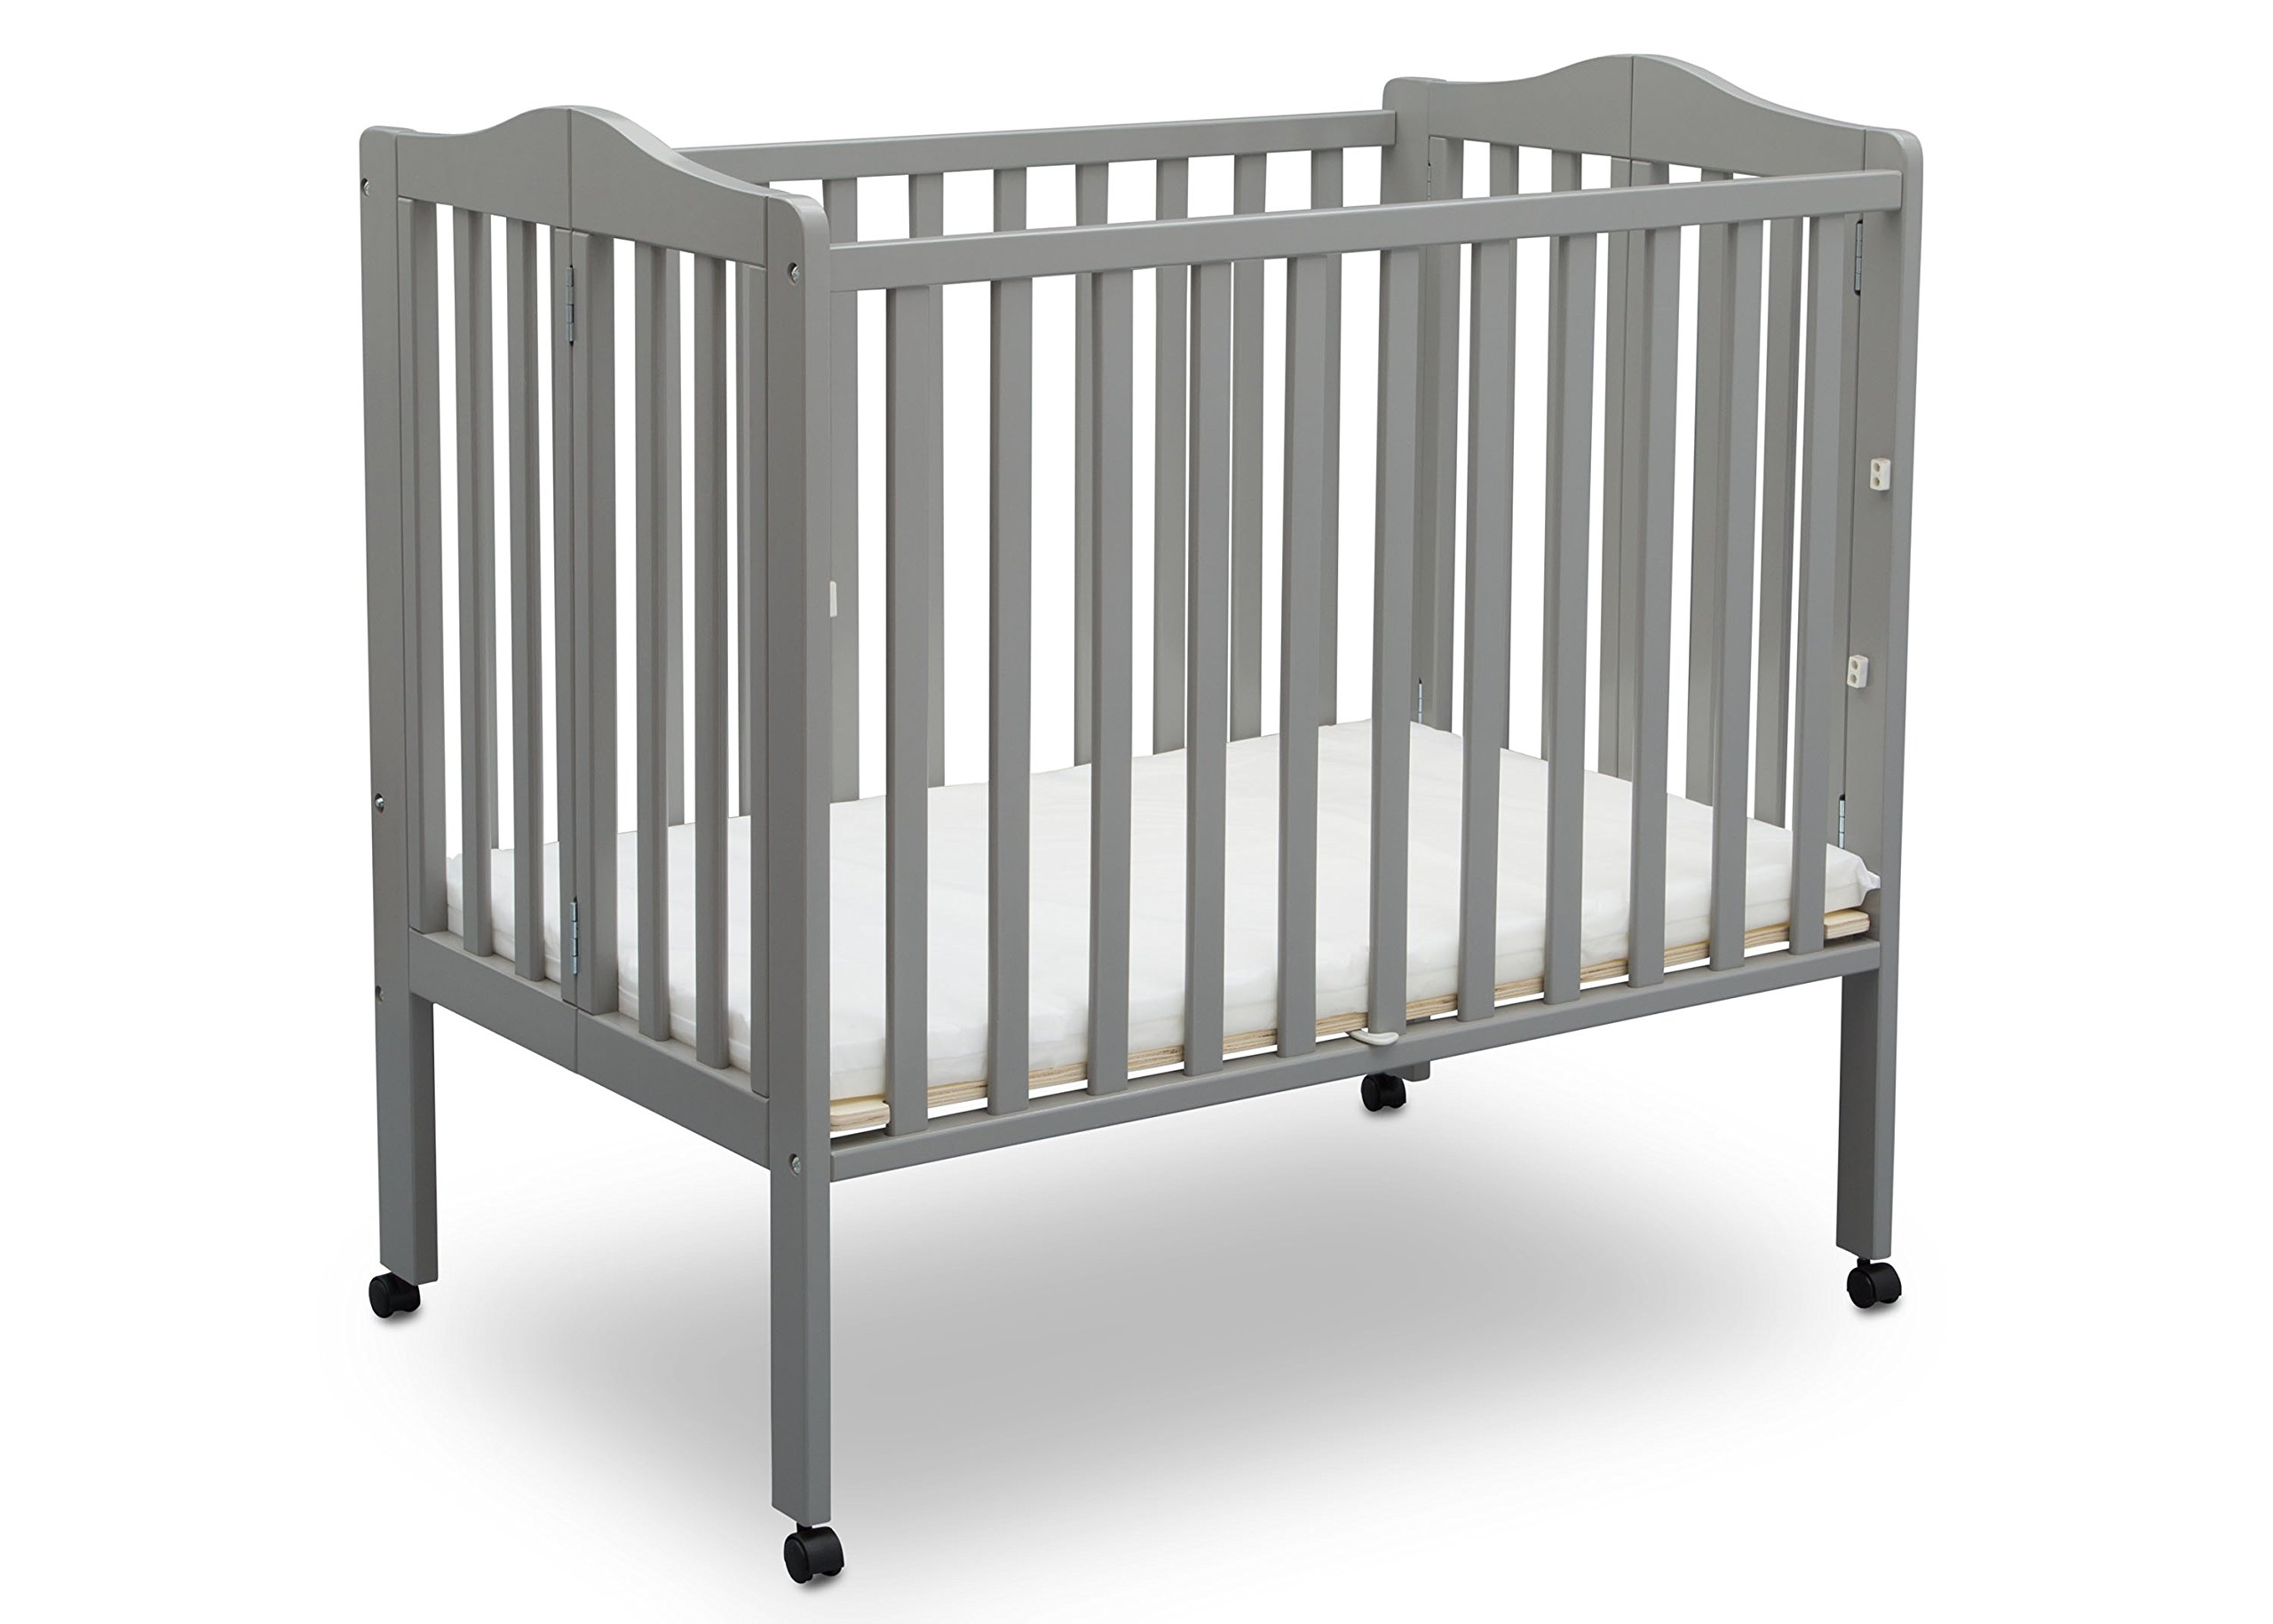 Delta Children Folding Portable Mini Baby Crib with Mattress, Grey by Delta Children